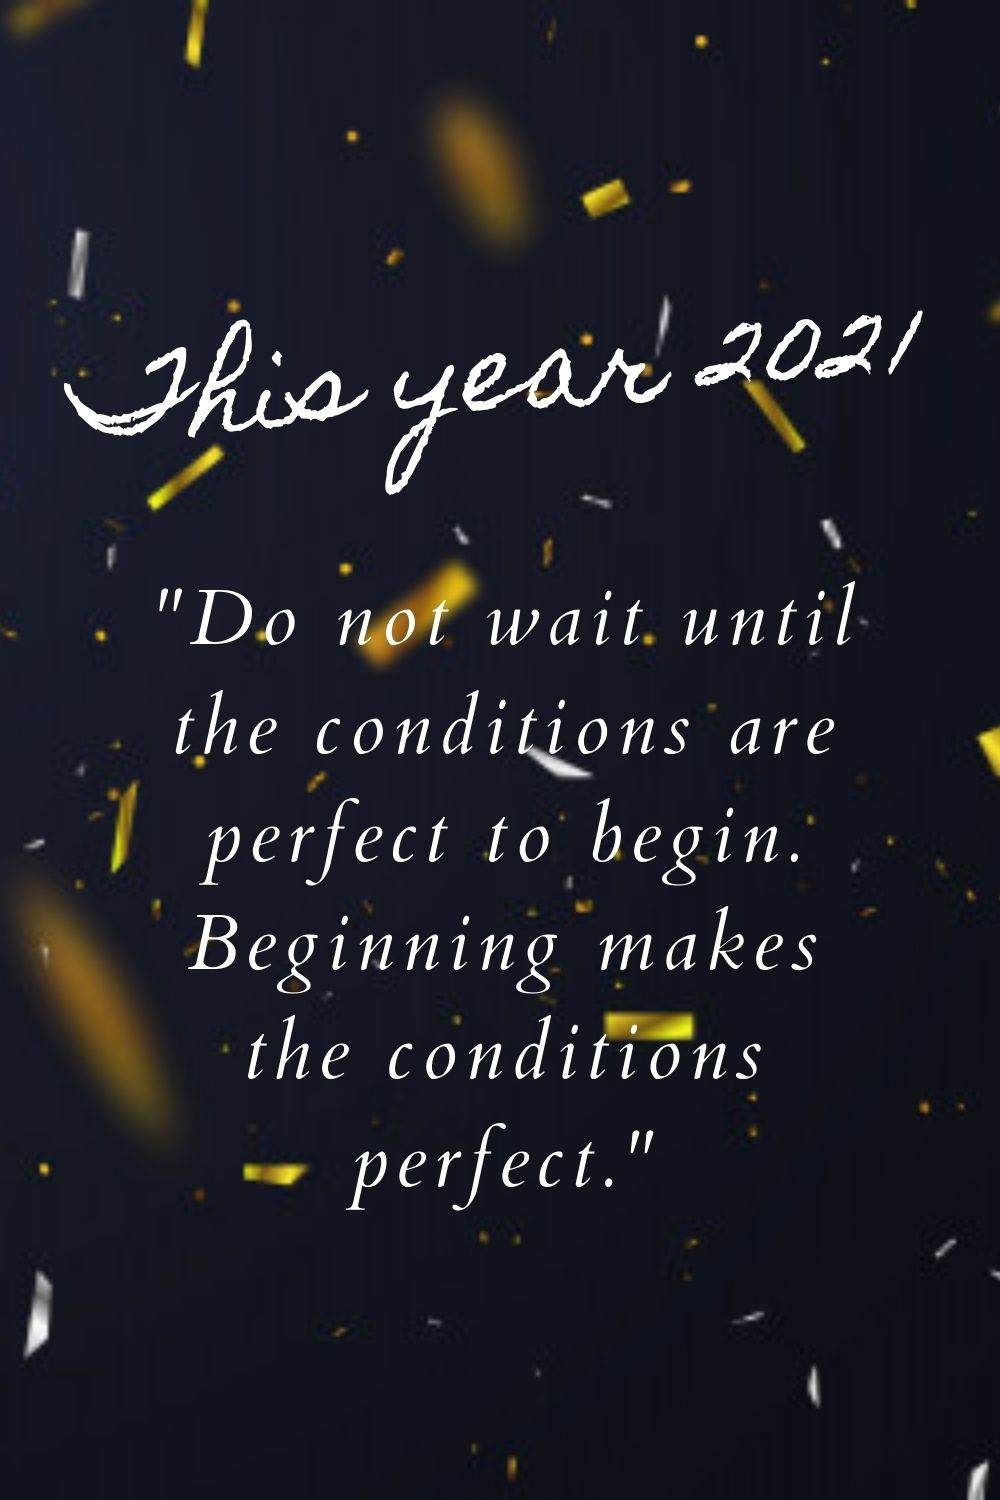 Perfect New Year Wishes 2021eve Quotes For Friends And Families Inspiration Happy New Year Quotes New Year Inspirational Quotes New Year Quotes Funny Hilarious